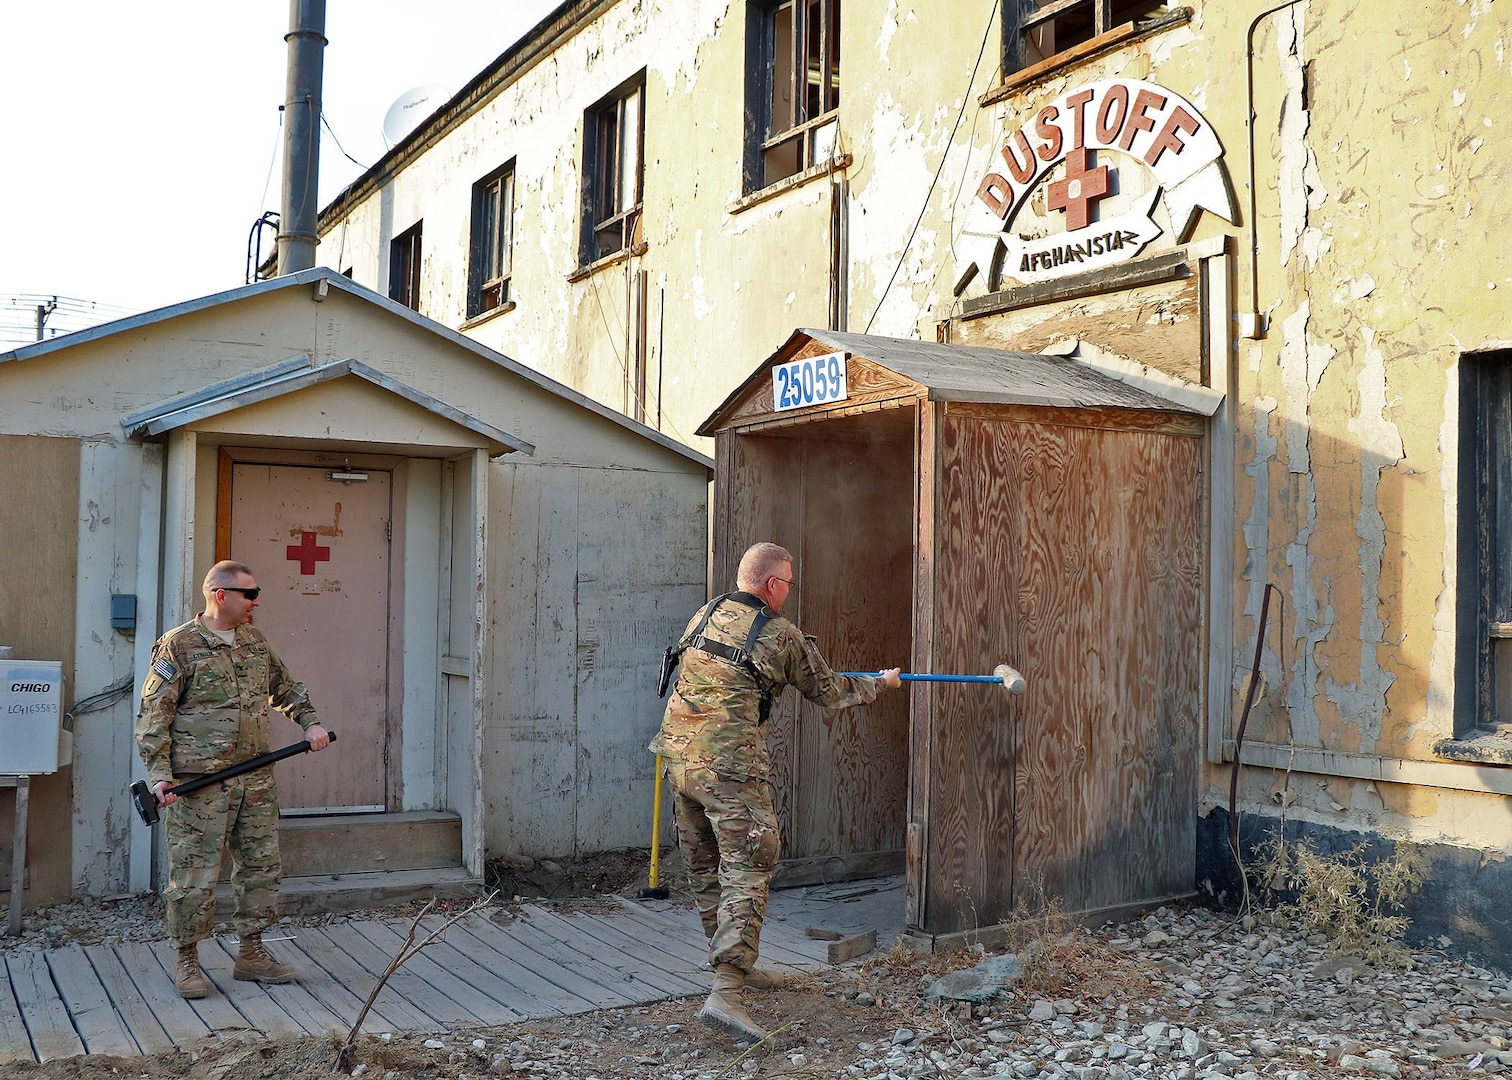 """The Commander of the 1st Combat Aviation Brigade Col. John M. Cyrulik stands at the ready waiting to take a swing with his sledge hammer to the old MEDVAC facility.  The 389th Engineer Company, 368th Engineer Battalion, 176th Engineer Brigade, built a new MEDVAC facility which will house members of Charlie Company, 2nd Battalion, 1st Aviation Regiment (General Support Aviation Battalion) from Ft. Riley, Kan. (""""Boomer Dust-off""""). (DOD photo by Jet Fabara)"""